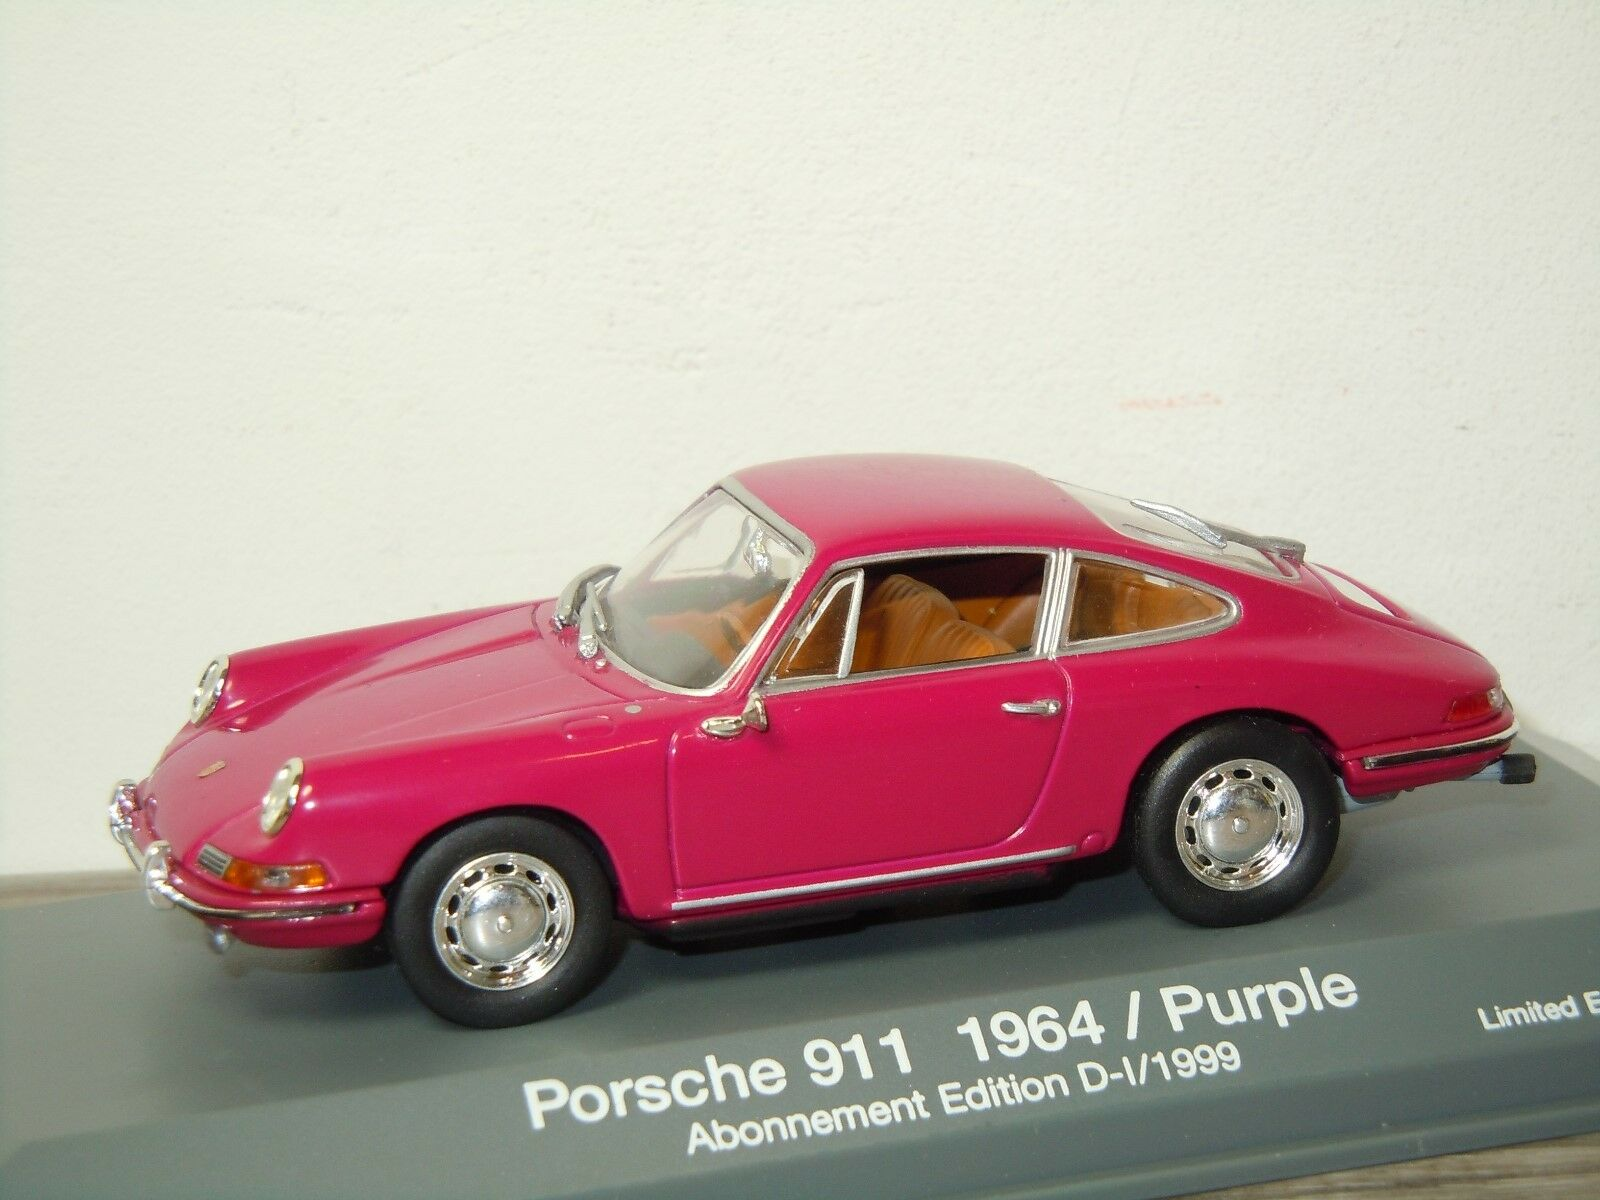 Porsche 911 Coupe 1964 - Minichamps 1 43 in Box 30328